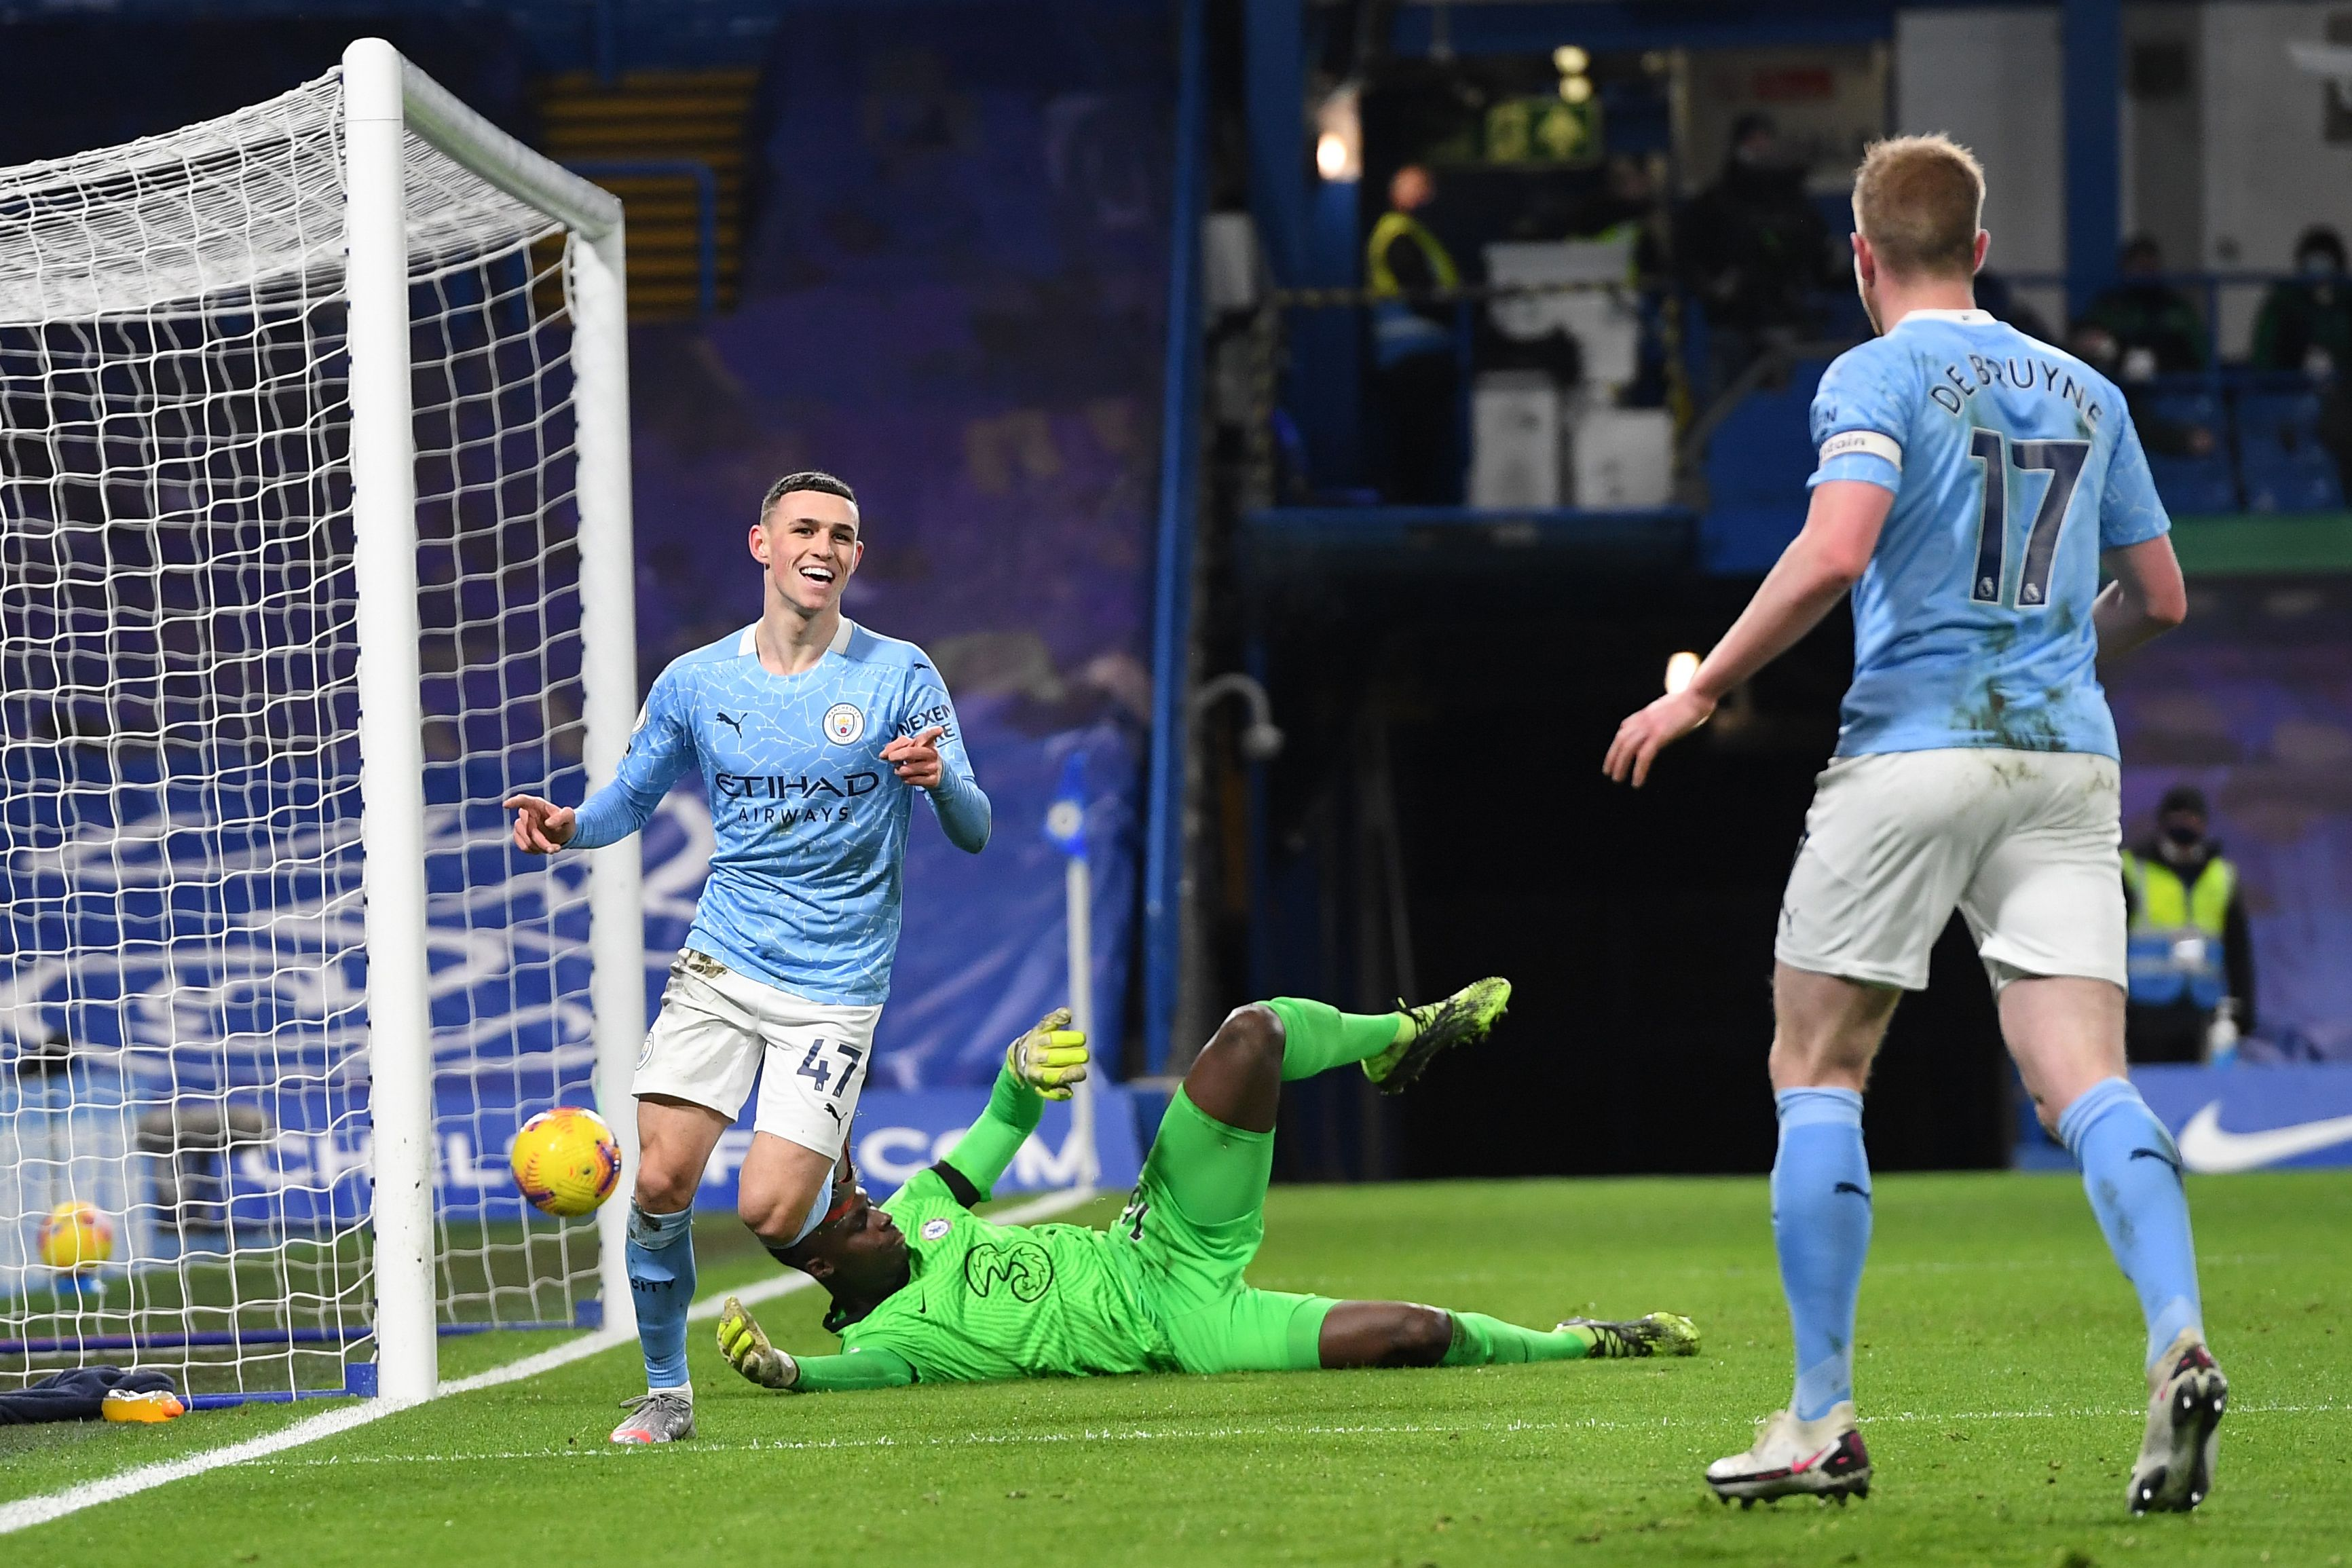 Covid-hit Manchester City cruises to win at struggling Chelsea